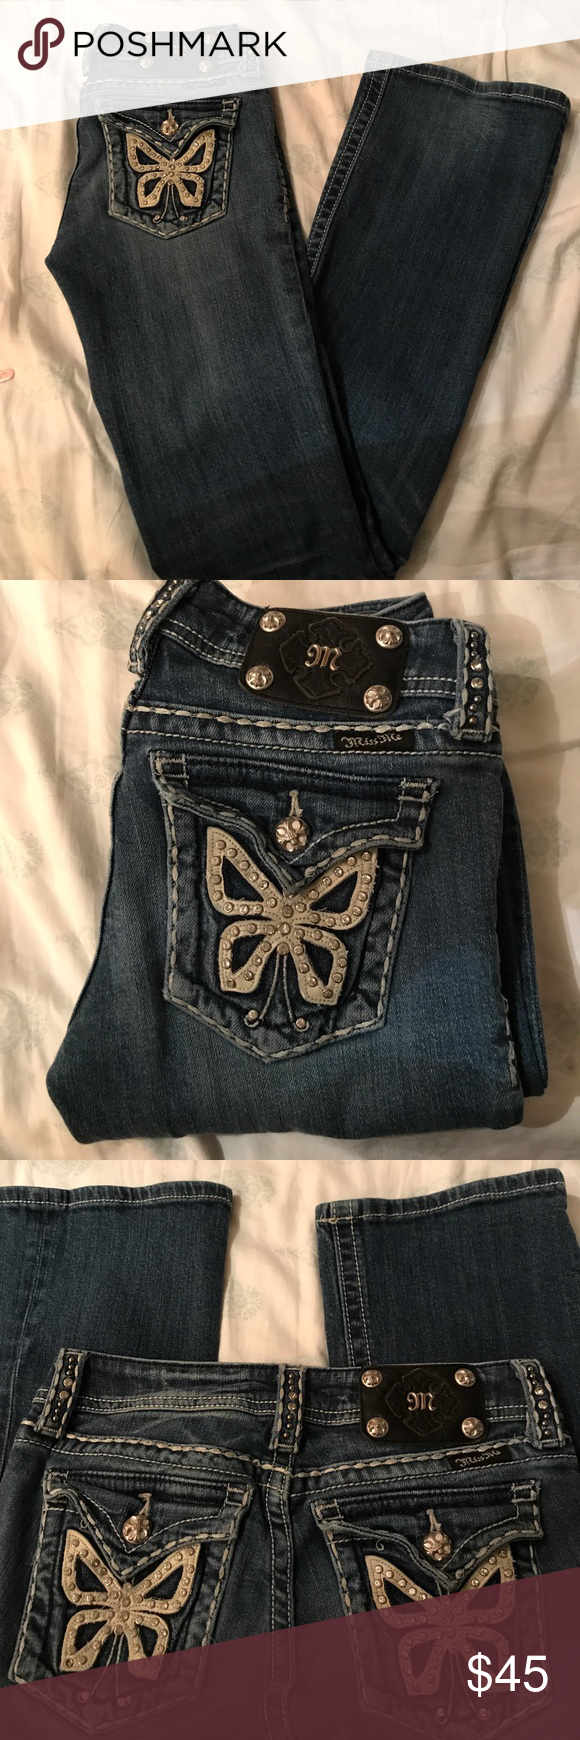 Miss Me Jeans JP5019-3 SZ25 This is a pair of Niss me Jeans that are in great condition with little wear and tear. No rhinestones are missing. This is a boot cut with a faded wash. The Jean bottoms have no rips or fraying. Size 25 Miss Me Jeans Boot Cut